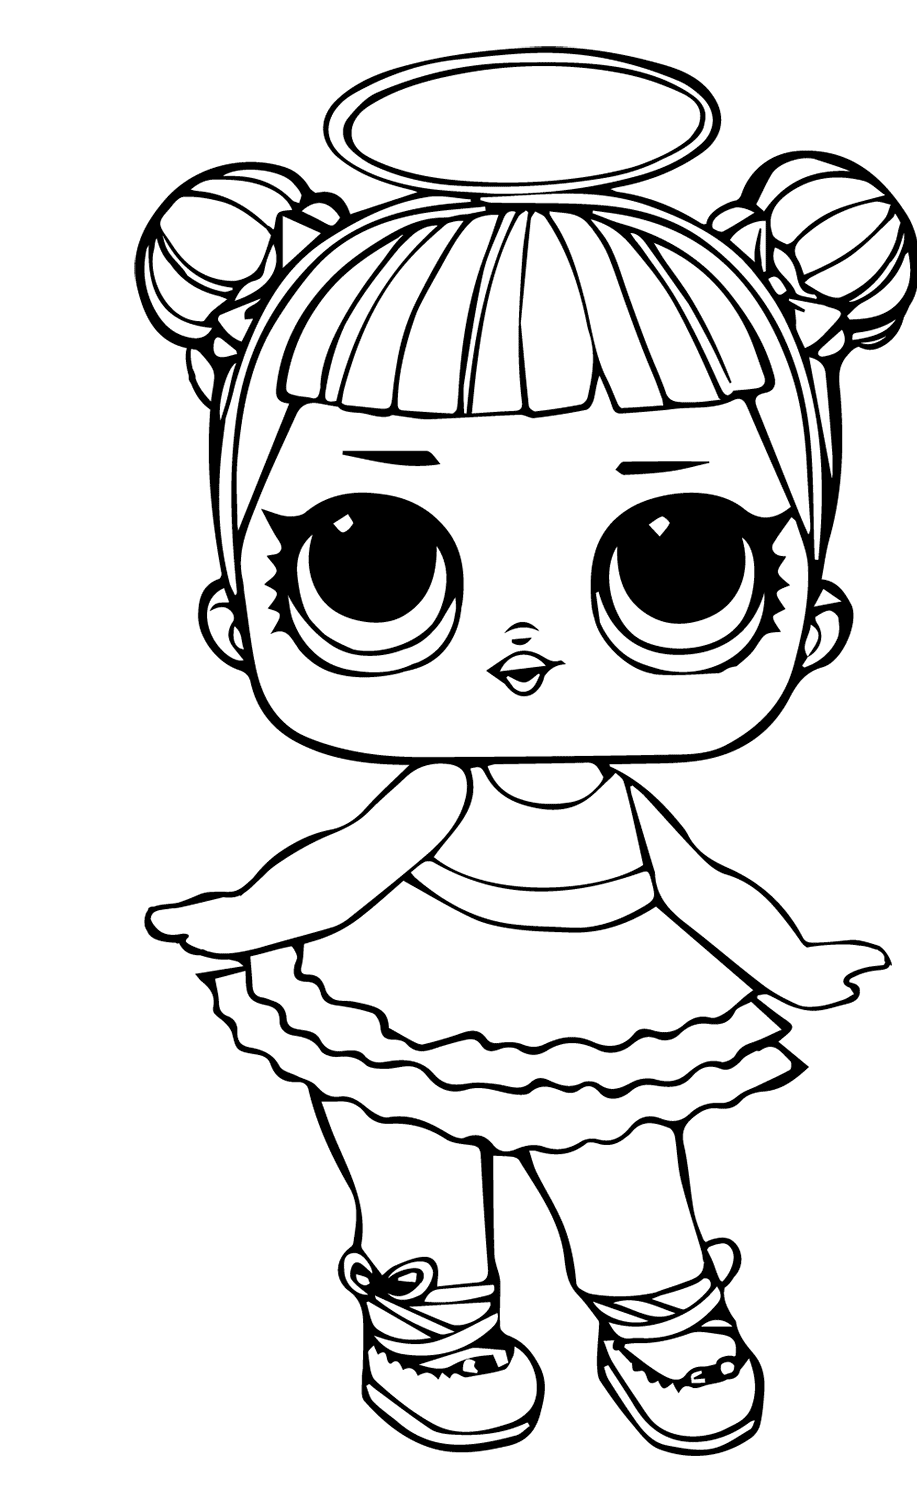 dolls coloring pages lol dolls coloring pages babies 101 worksheets dolls pages coloring